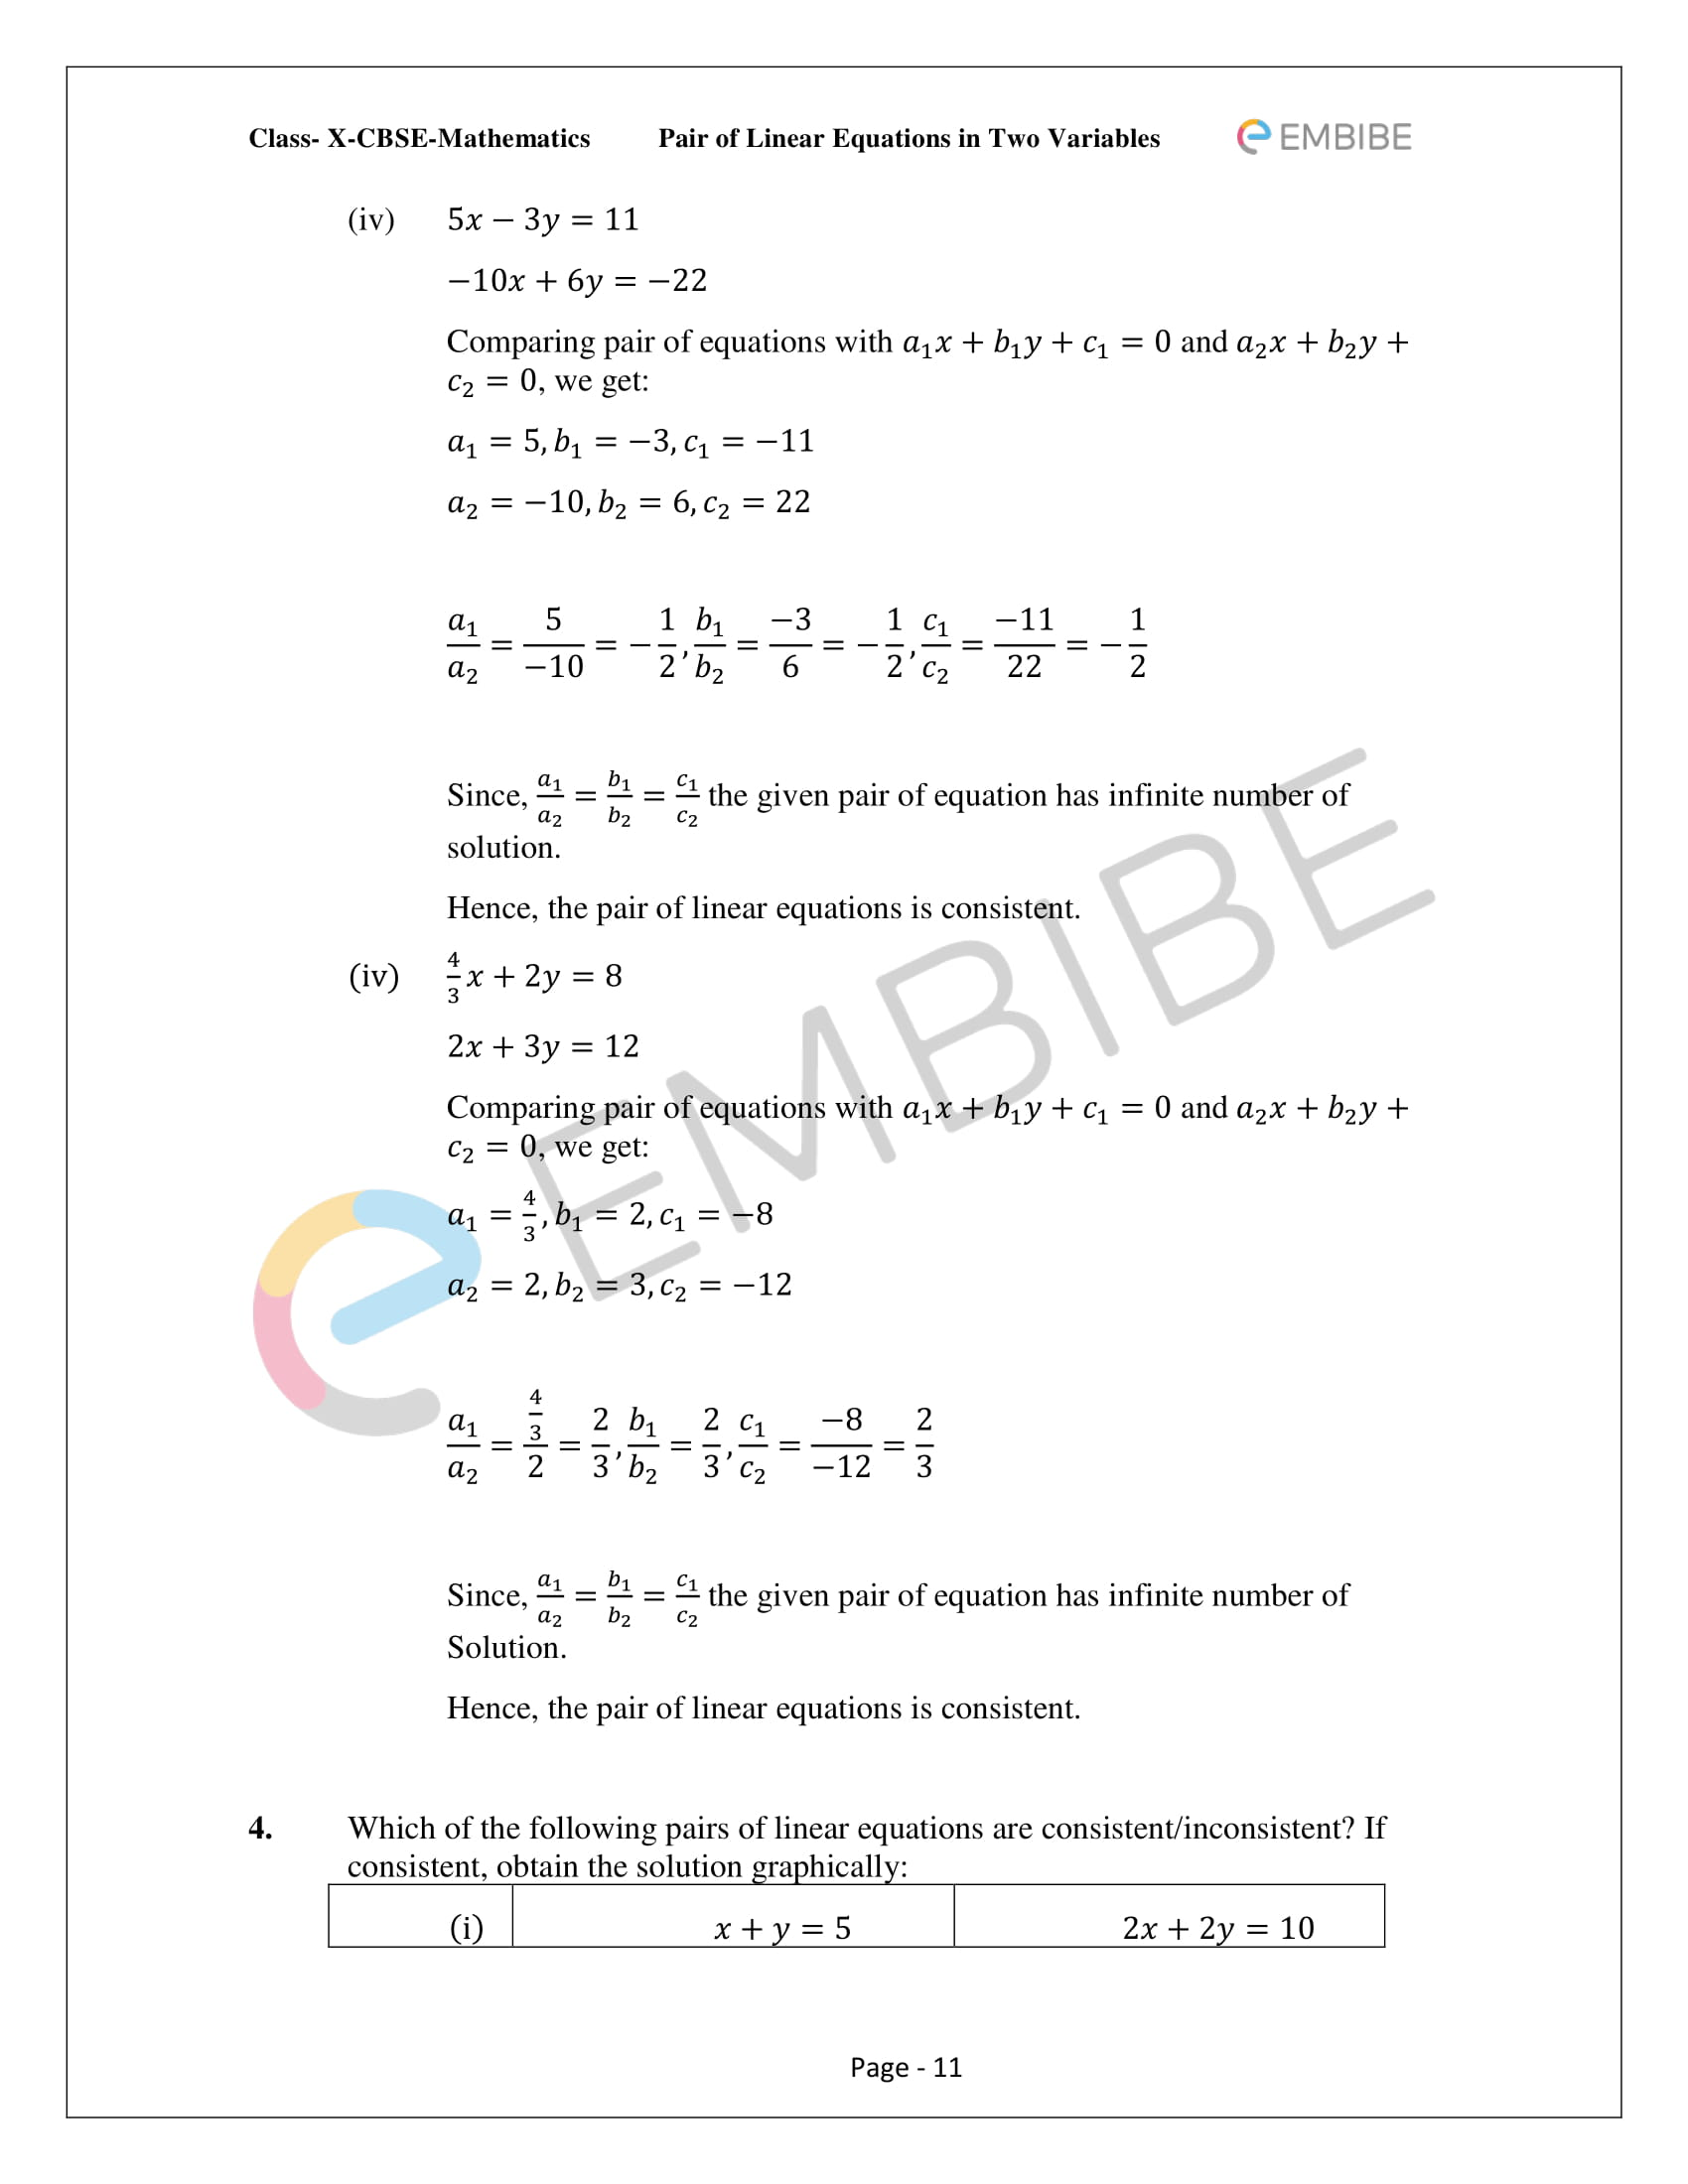 CBSE NCERT Solutions For Class 10 Maths Chapter 3 - Pair of Linear Equations In Two Variables - 11